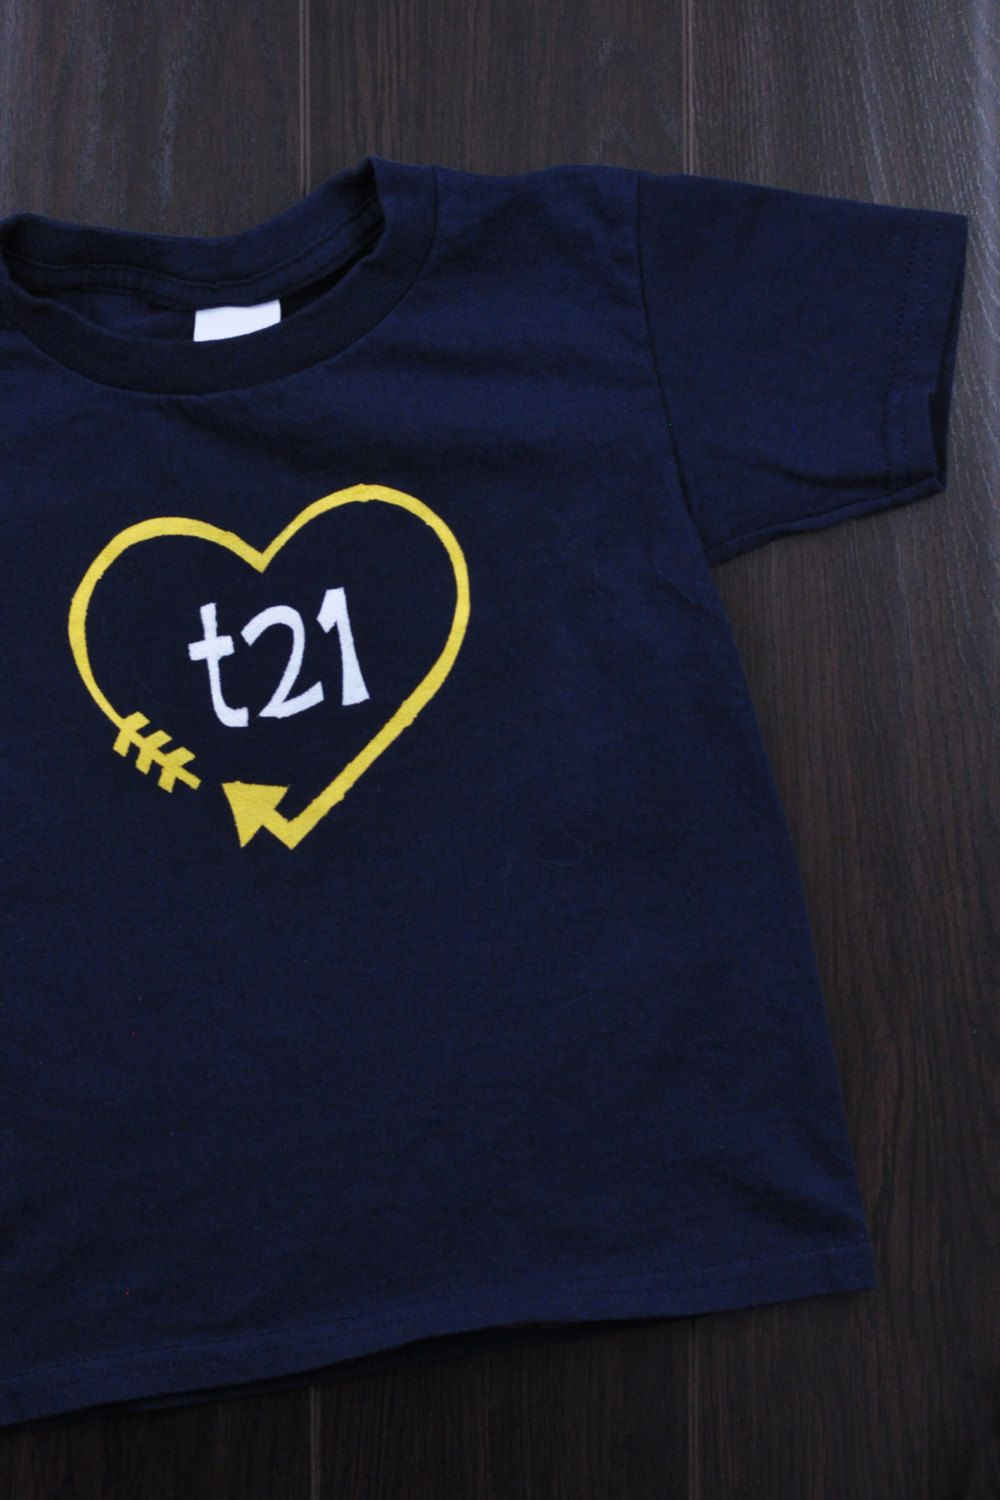 e22acedafb711 Down Syndrome Awareness Shirts ~ Girls and Boys, Navy Blue T-shirt with  Yellow and White